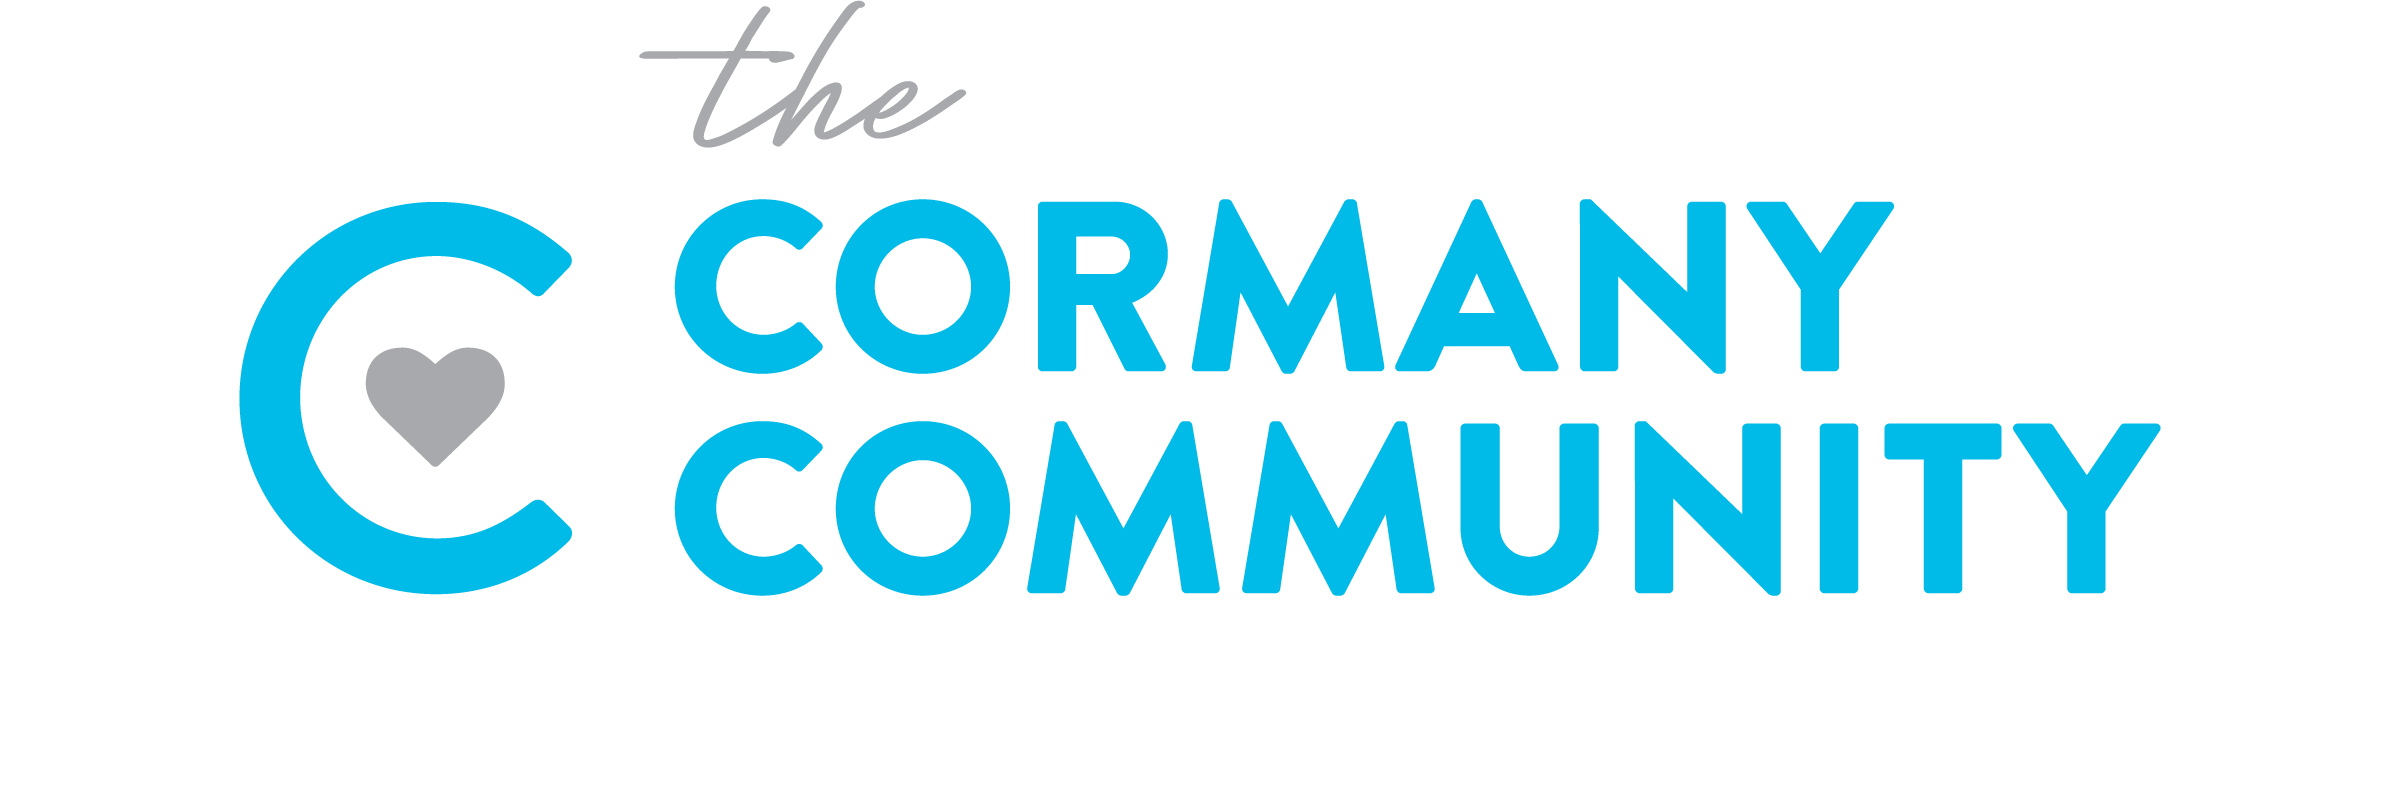 The Cormany Community